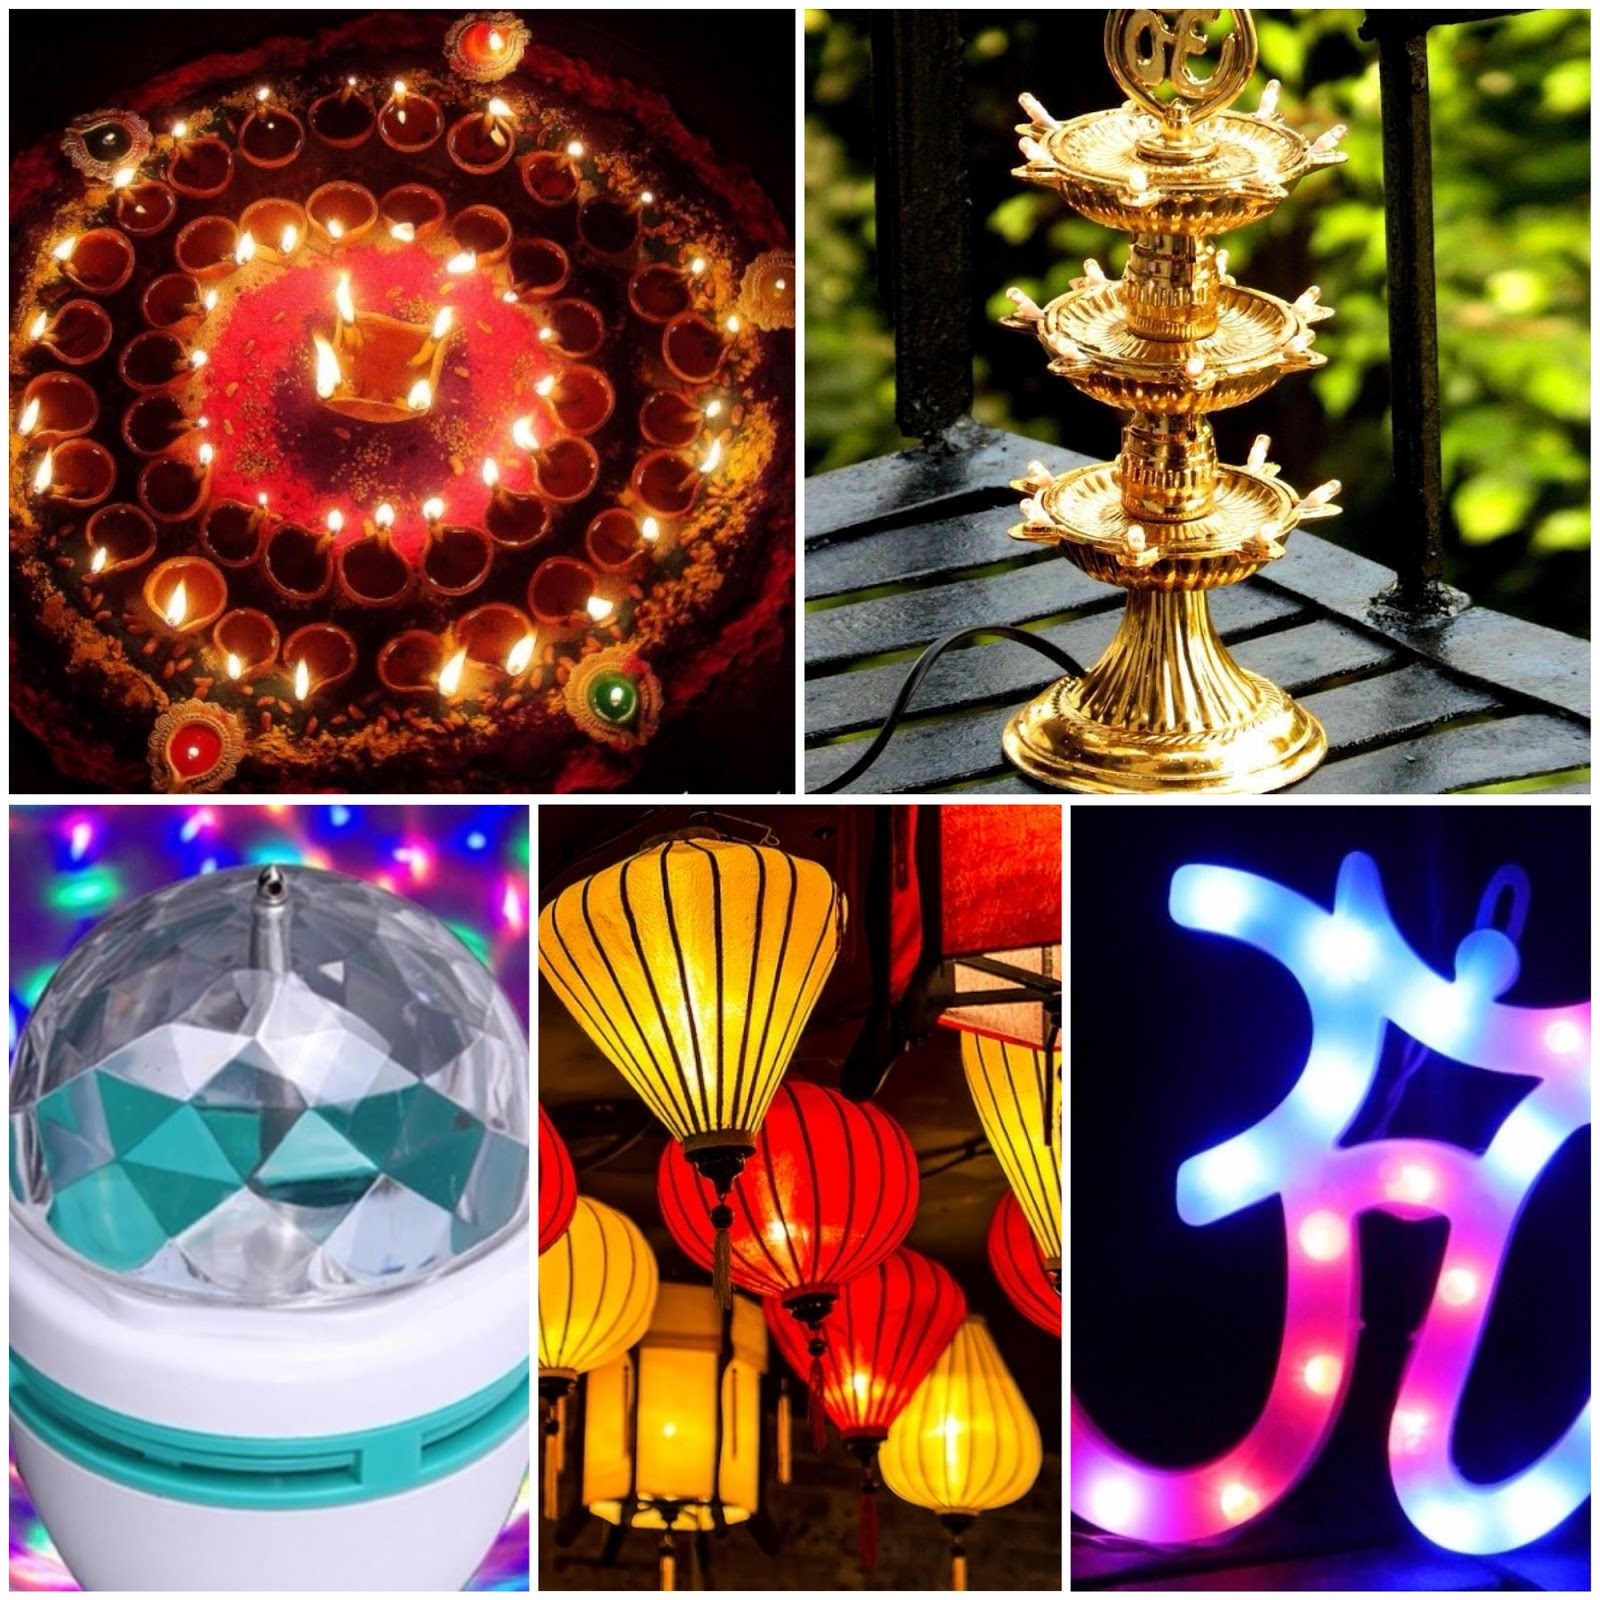 Light Decoration Diwali 15 Different Types Of Diwali Lights And Lamps With